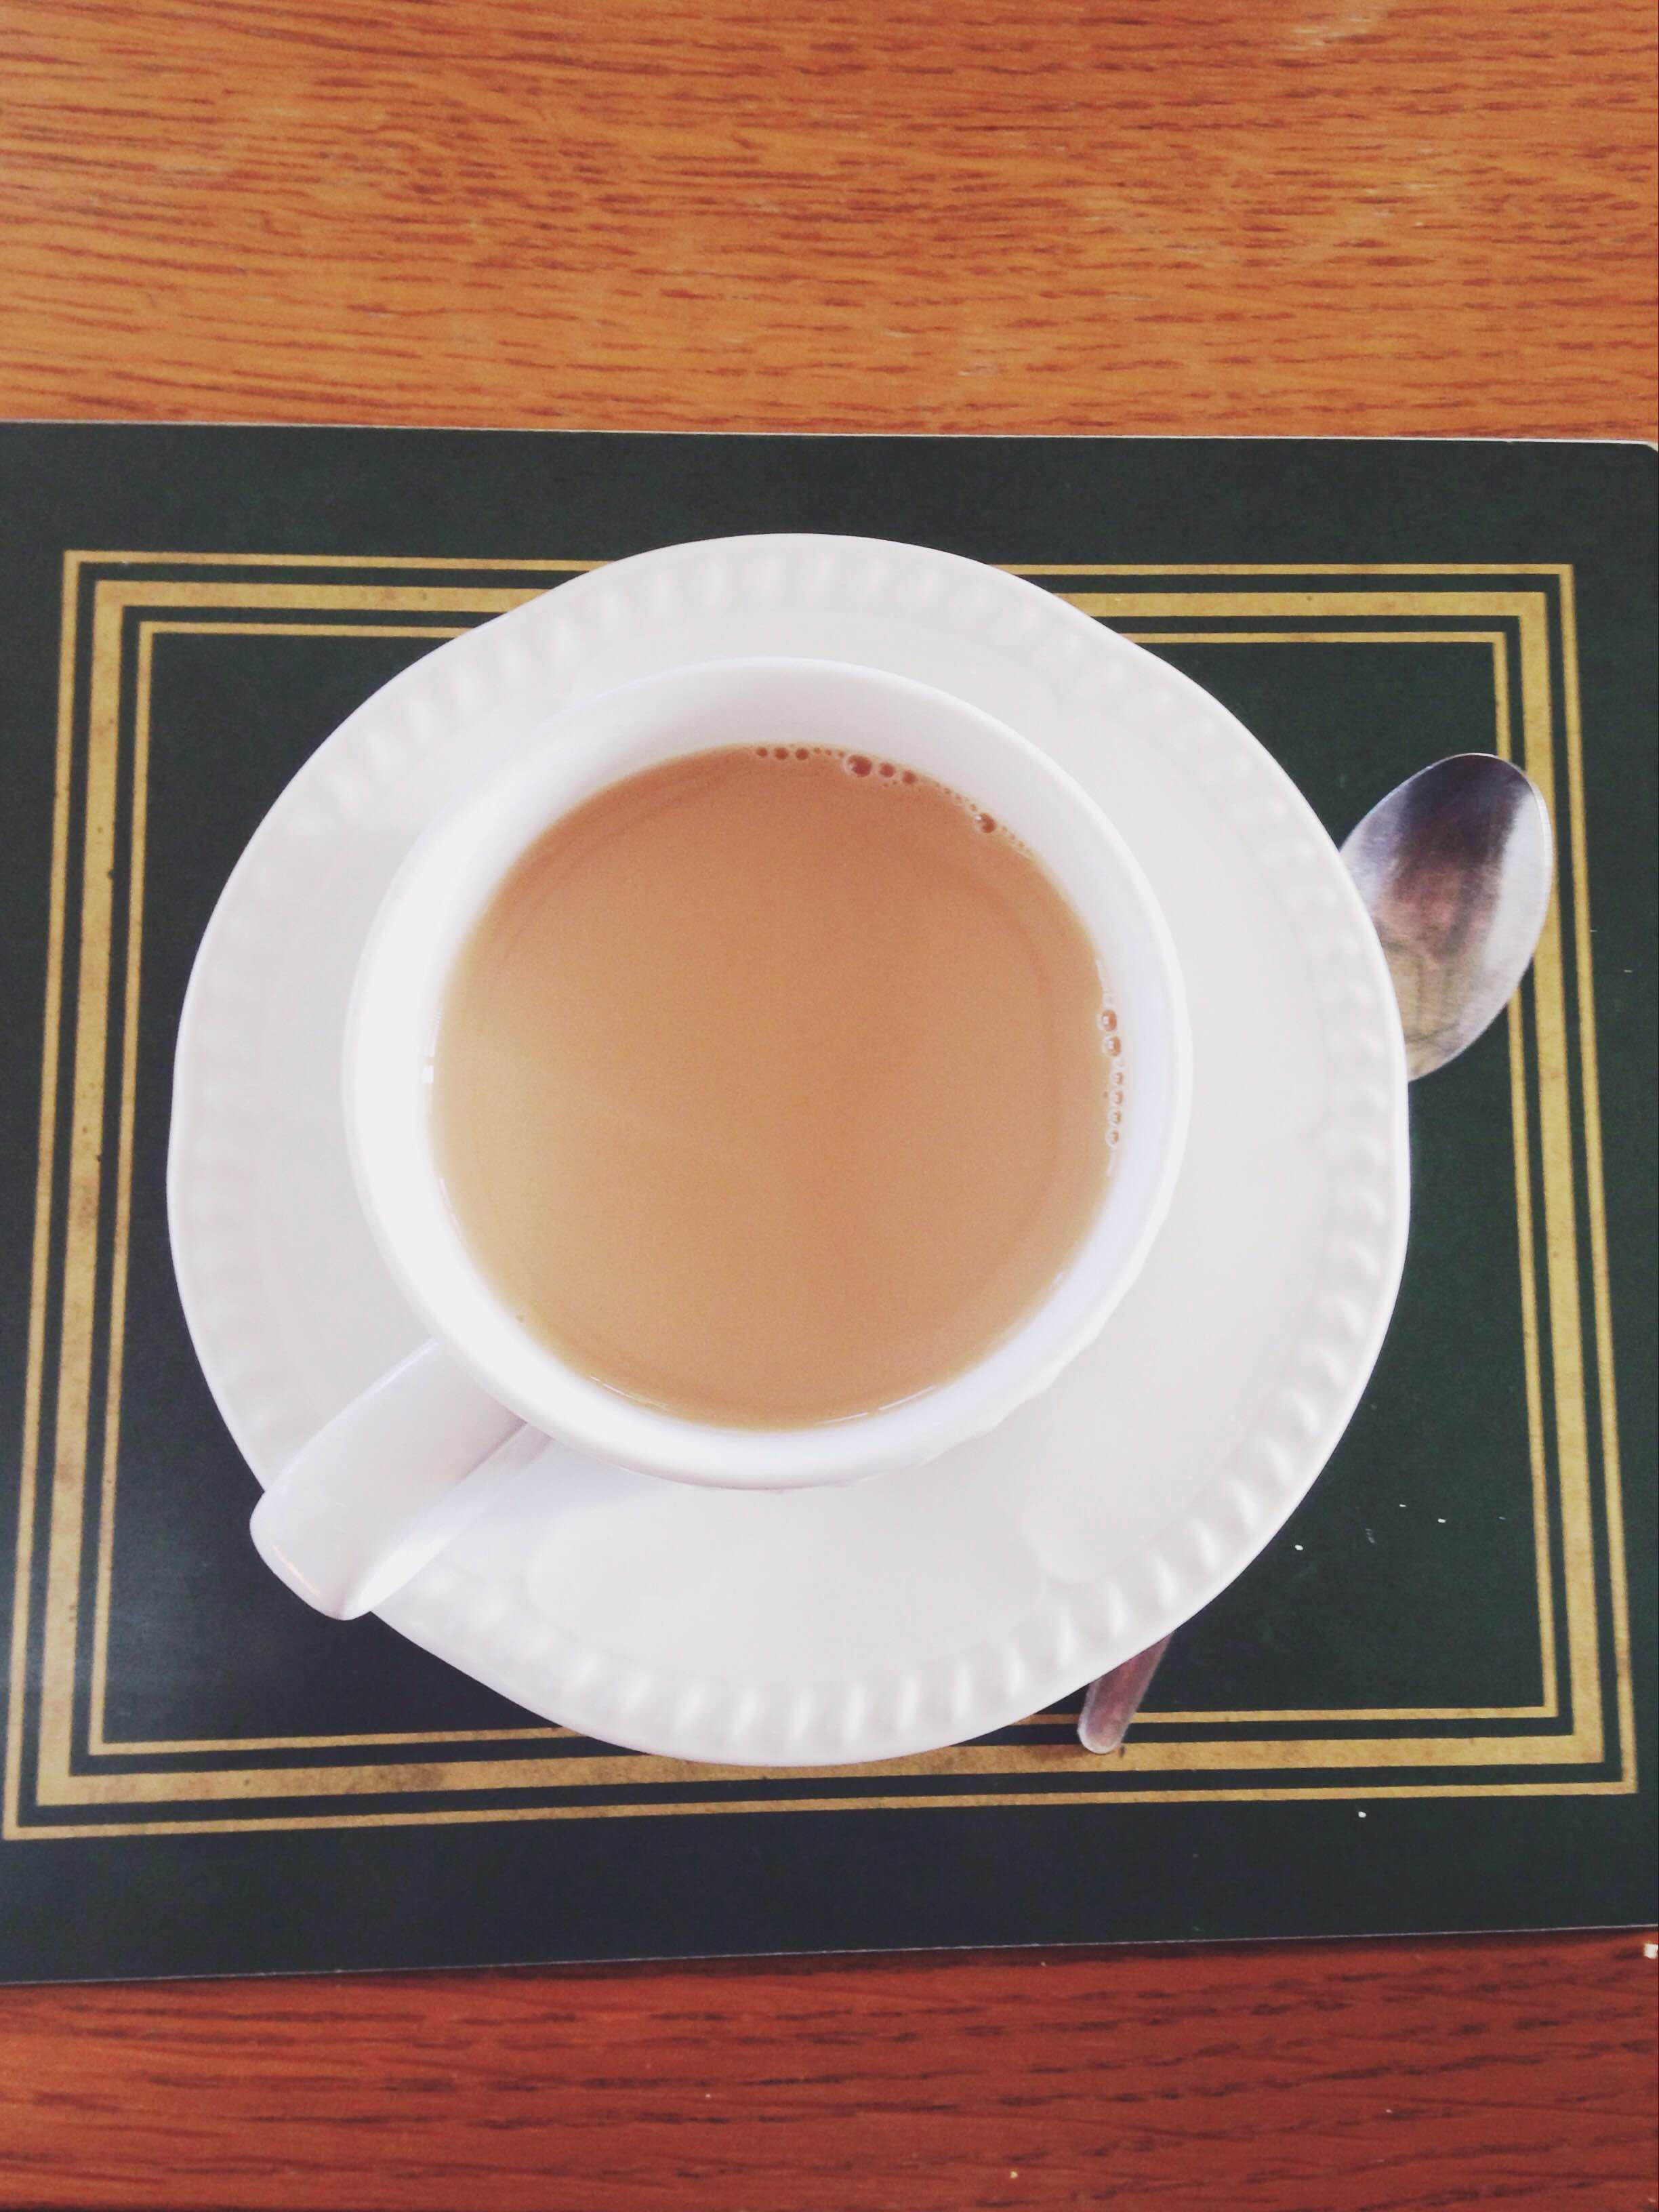 Can't beat a good cup of tea